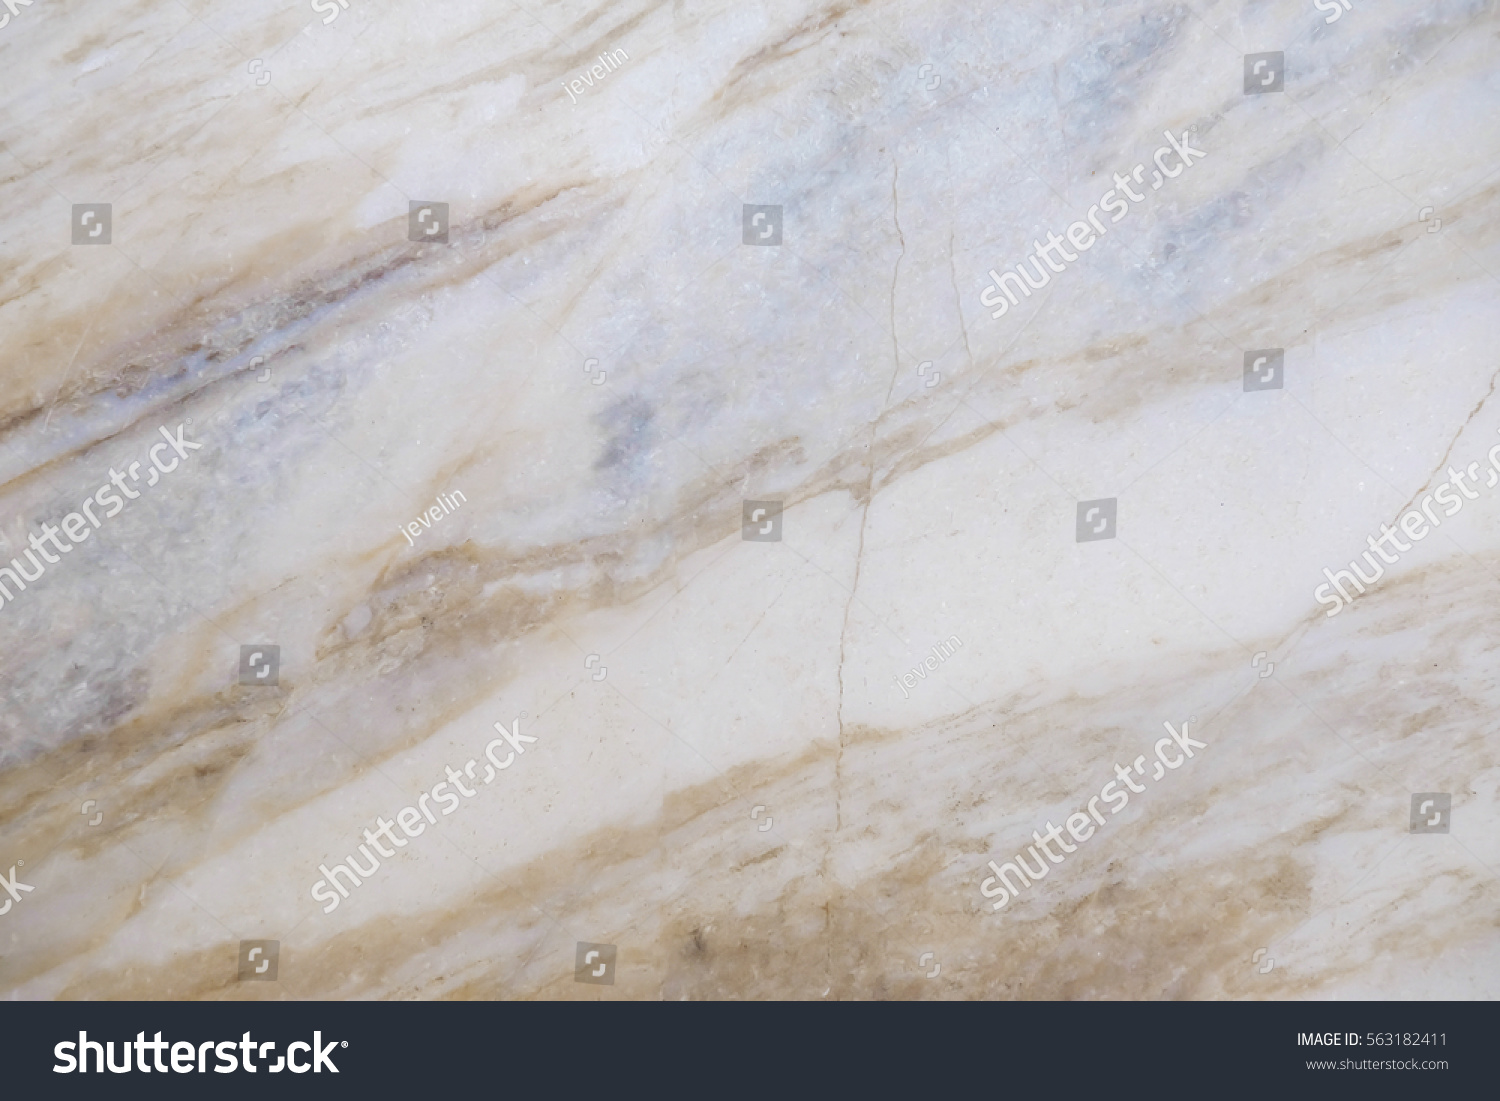 Best Wallpaper Marble Wood - stock-photo-wallpaper-marble-wall-texture-abstract-natural-marble-for-interior-design-marble-wall-with-a-563182411  Collection_102575.jpg